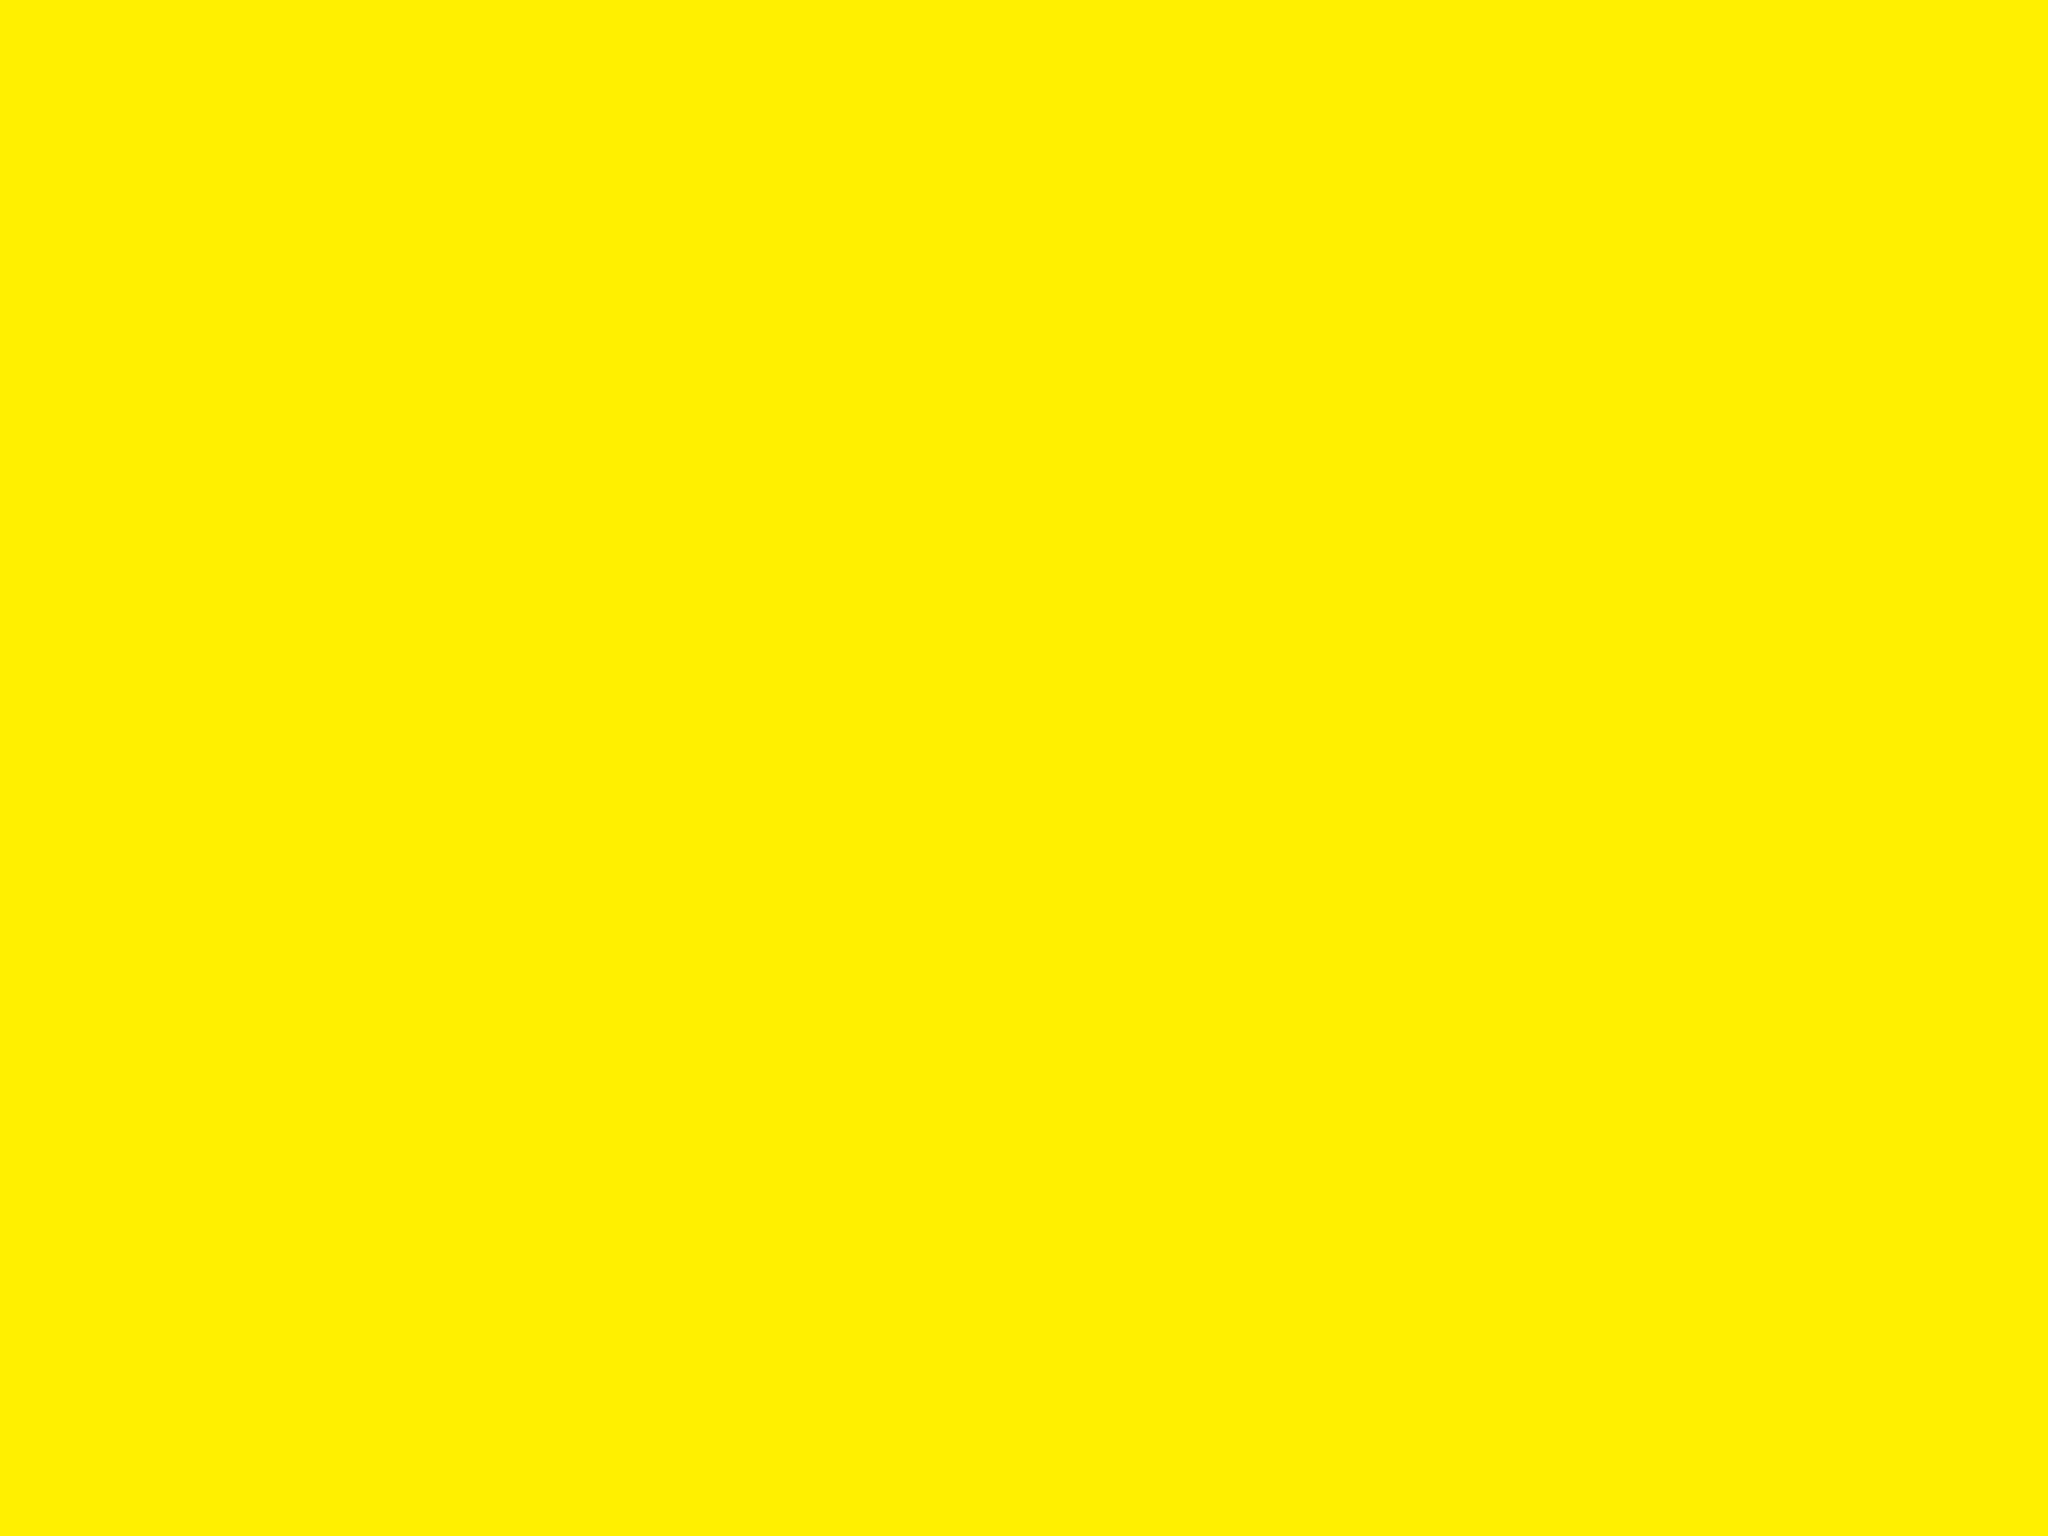 2048x1536 Yellow Rose Solid Color Background